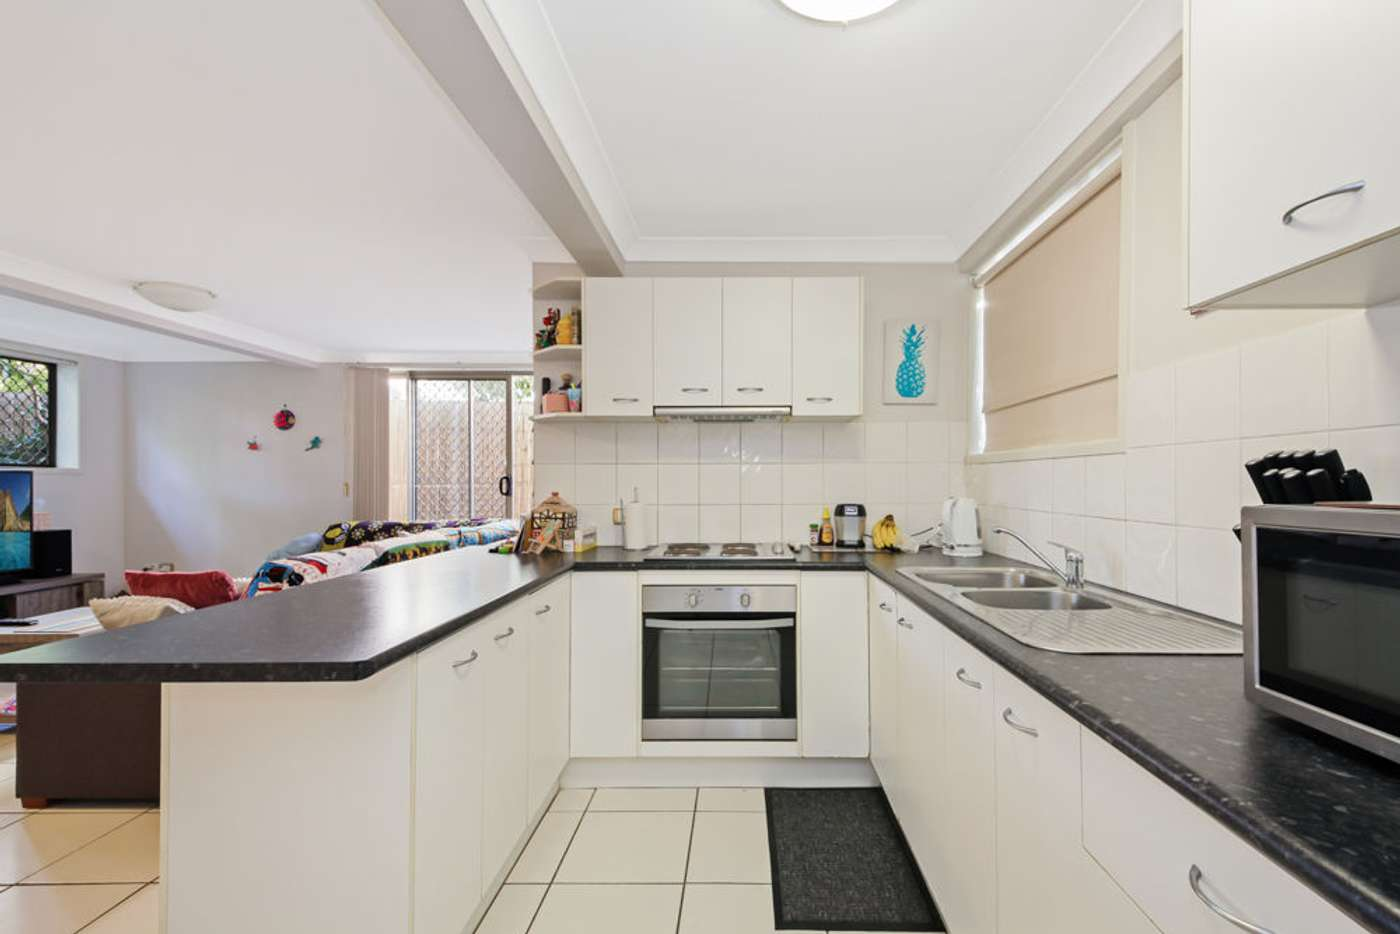 Fifth view of Homely townhouse listing, 1/65 Peach Street, Greenslopes QLD 4120